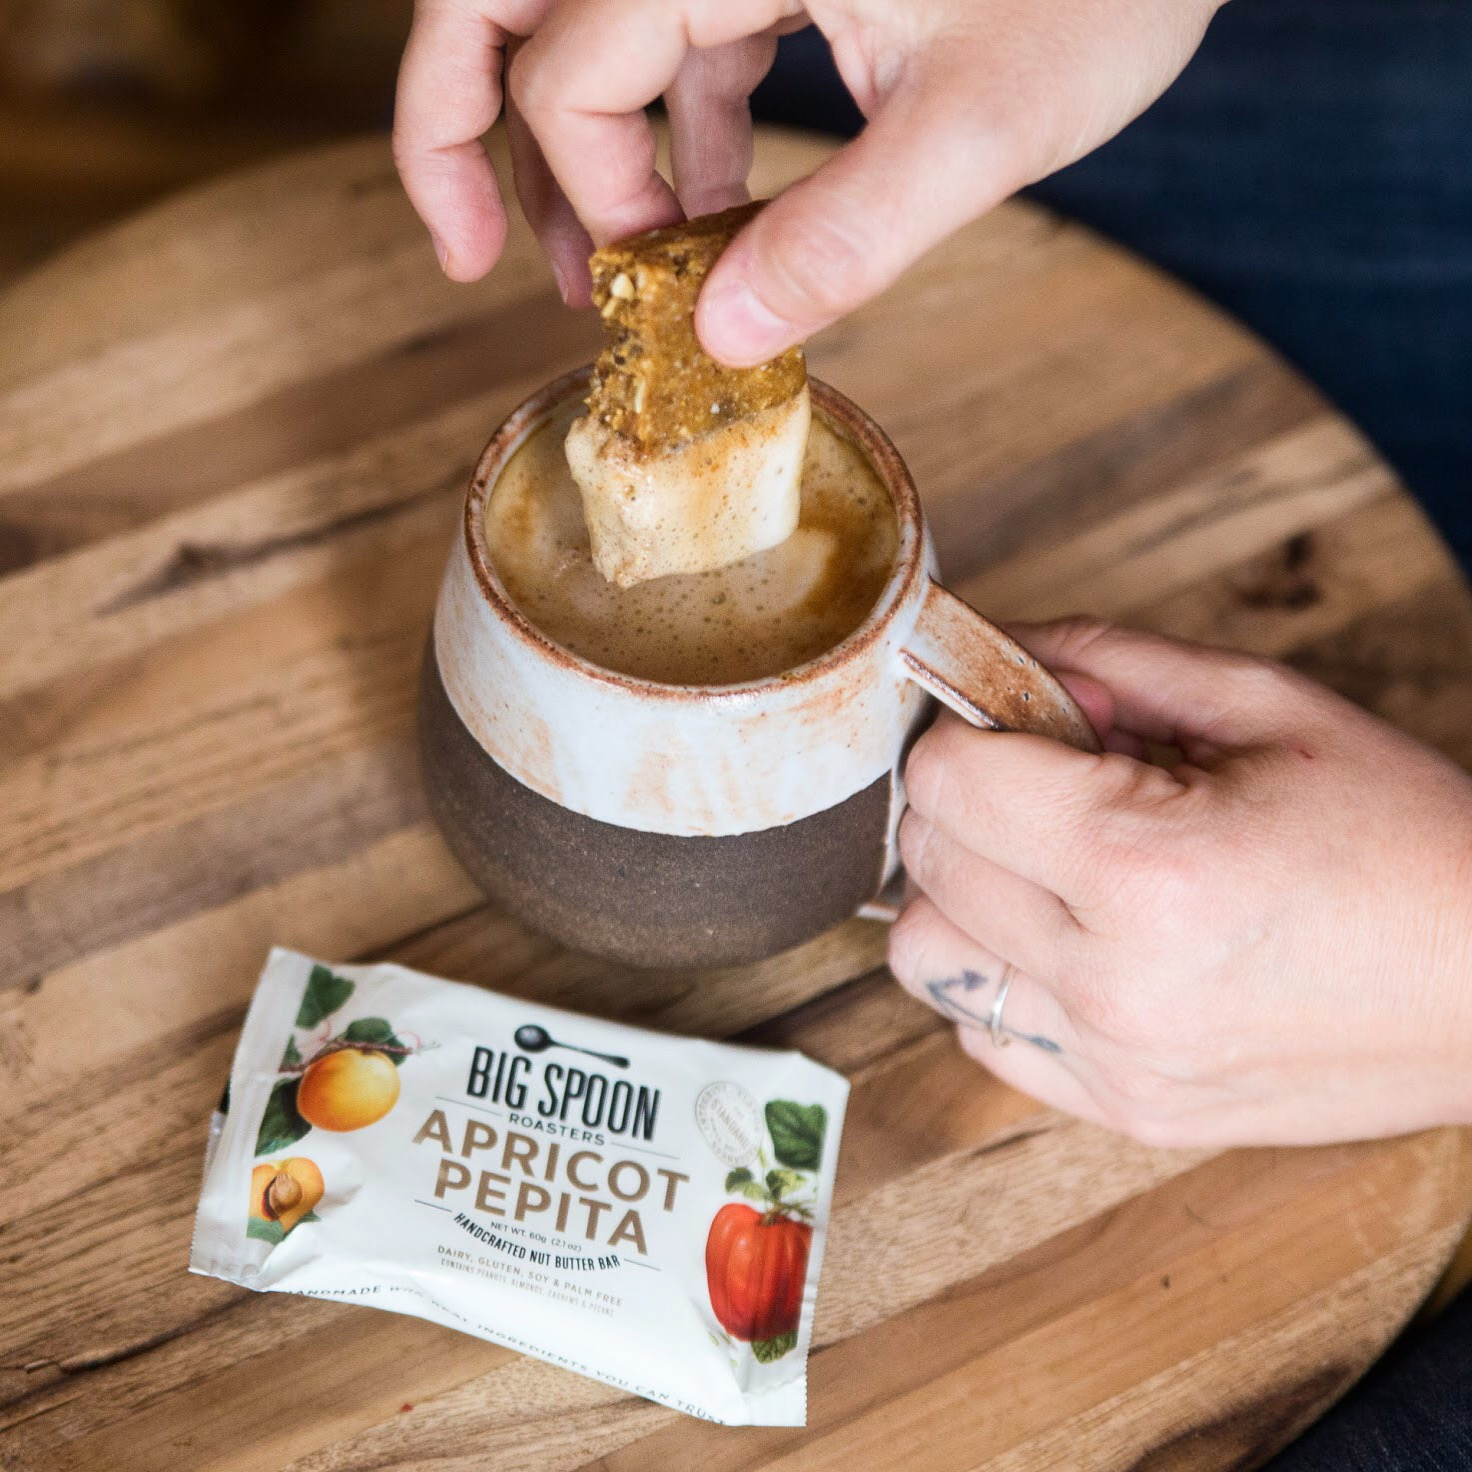 Big Spoon Roasters' handcrafted Apricot Pepita butter bar. (Photo courtesy of Big Spoon Roasters)